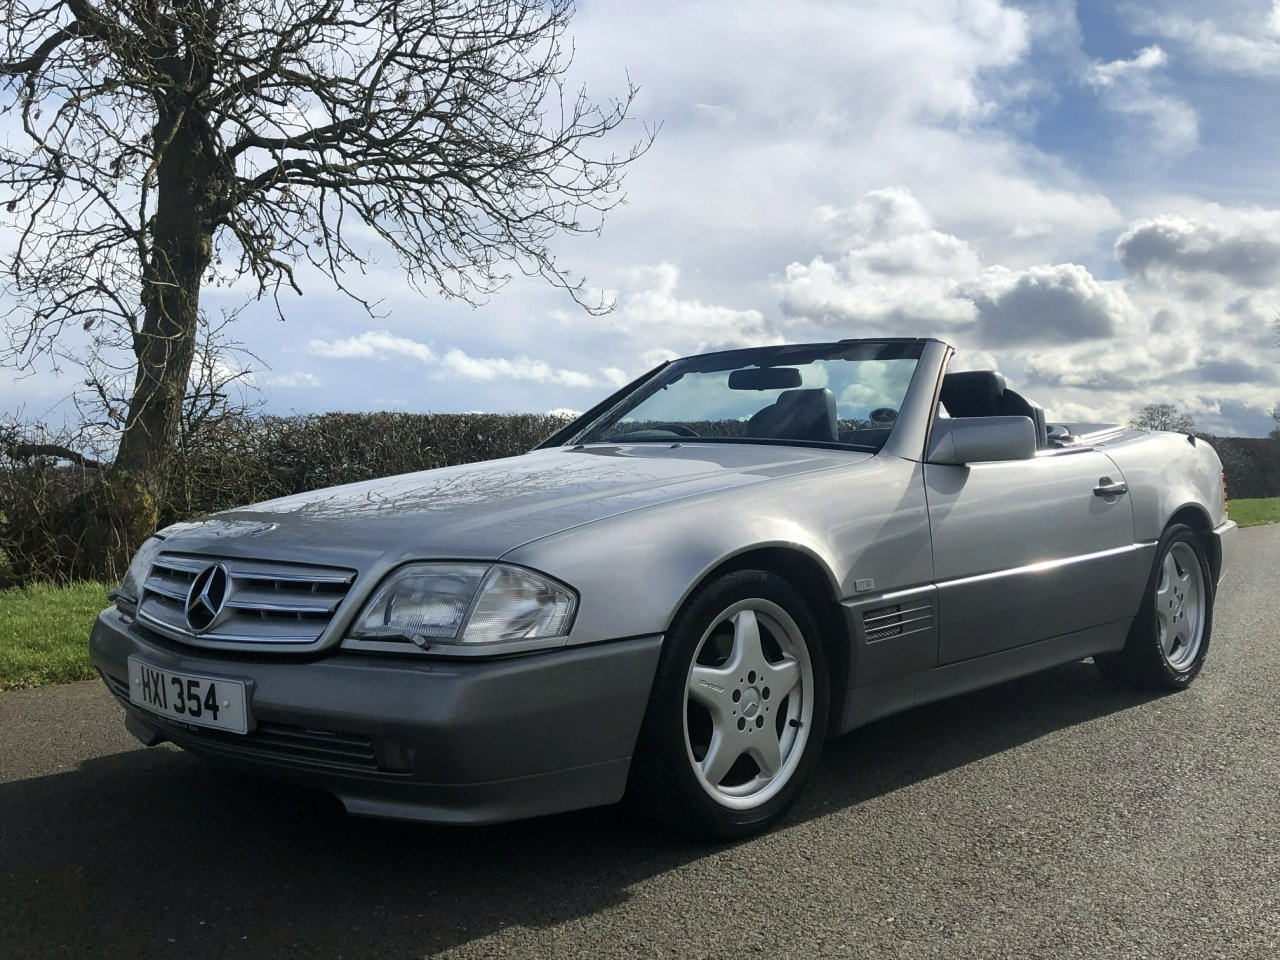 1990 Mercedes Benz 300 SL-24V R129 Automatic SOLD (picture 1 of 6)